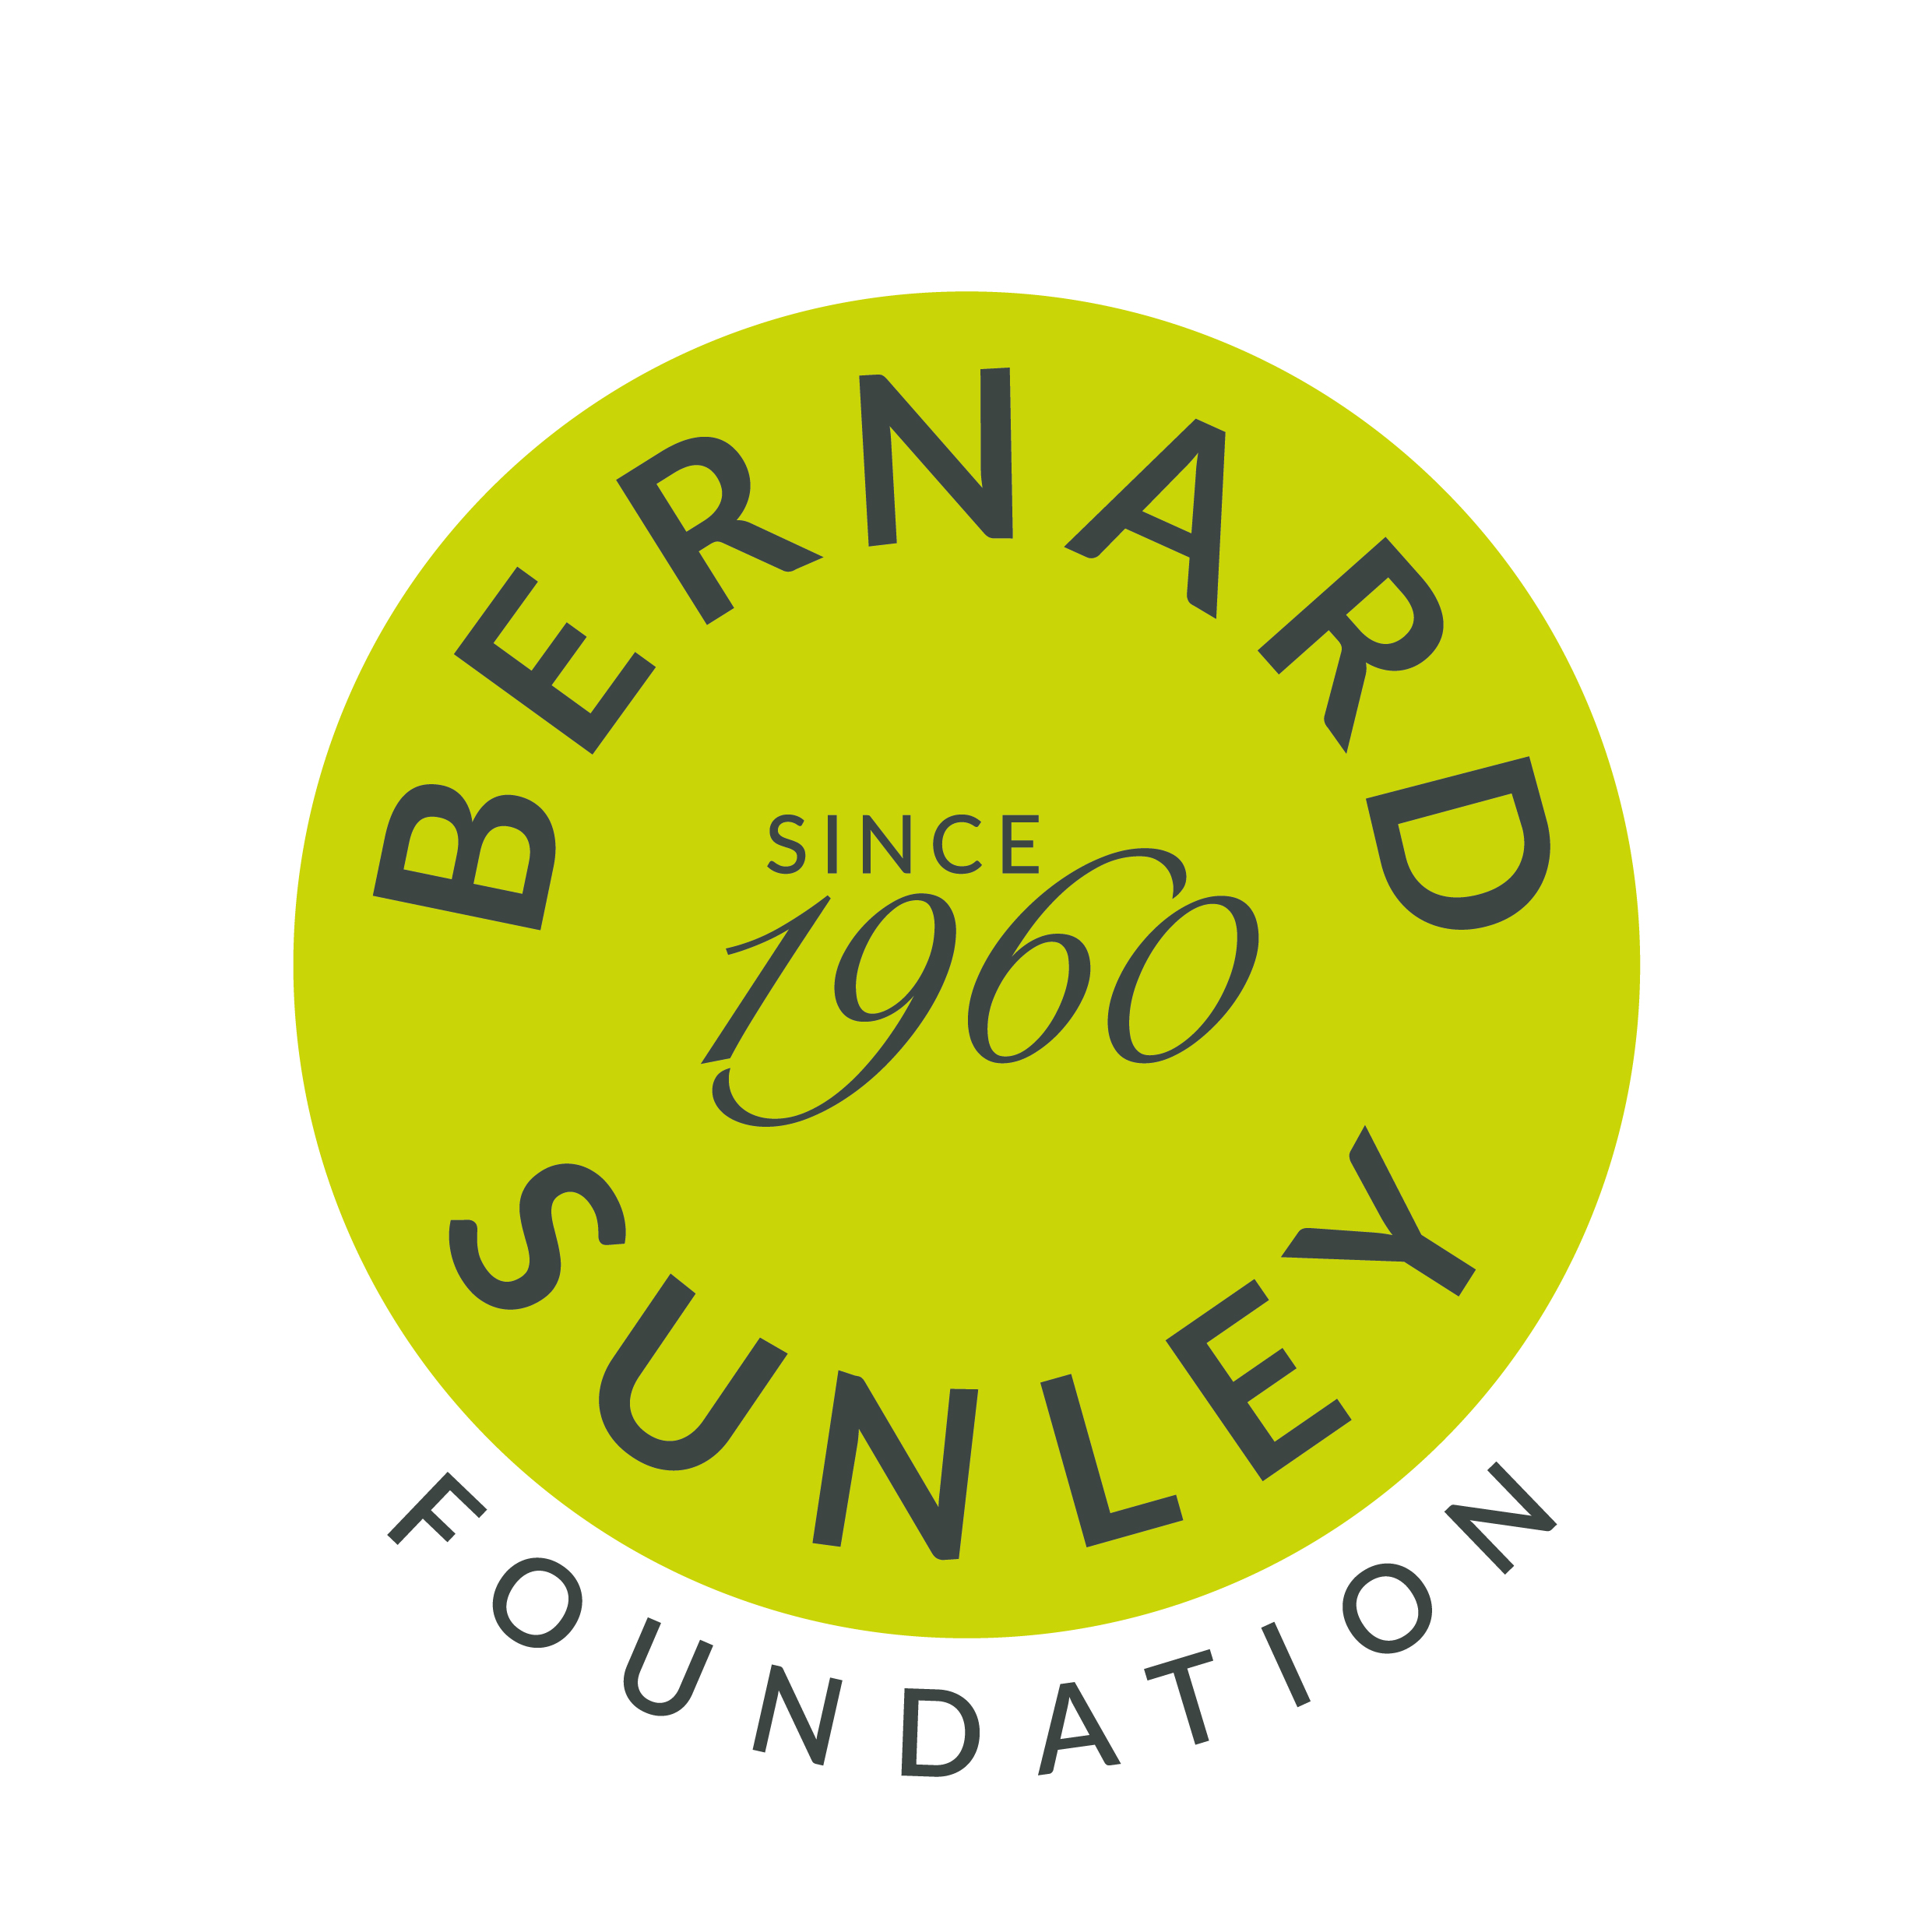 Bernard Sunley Foundation